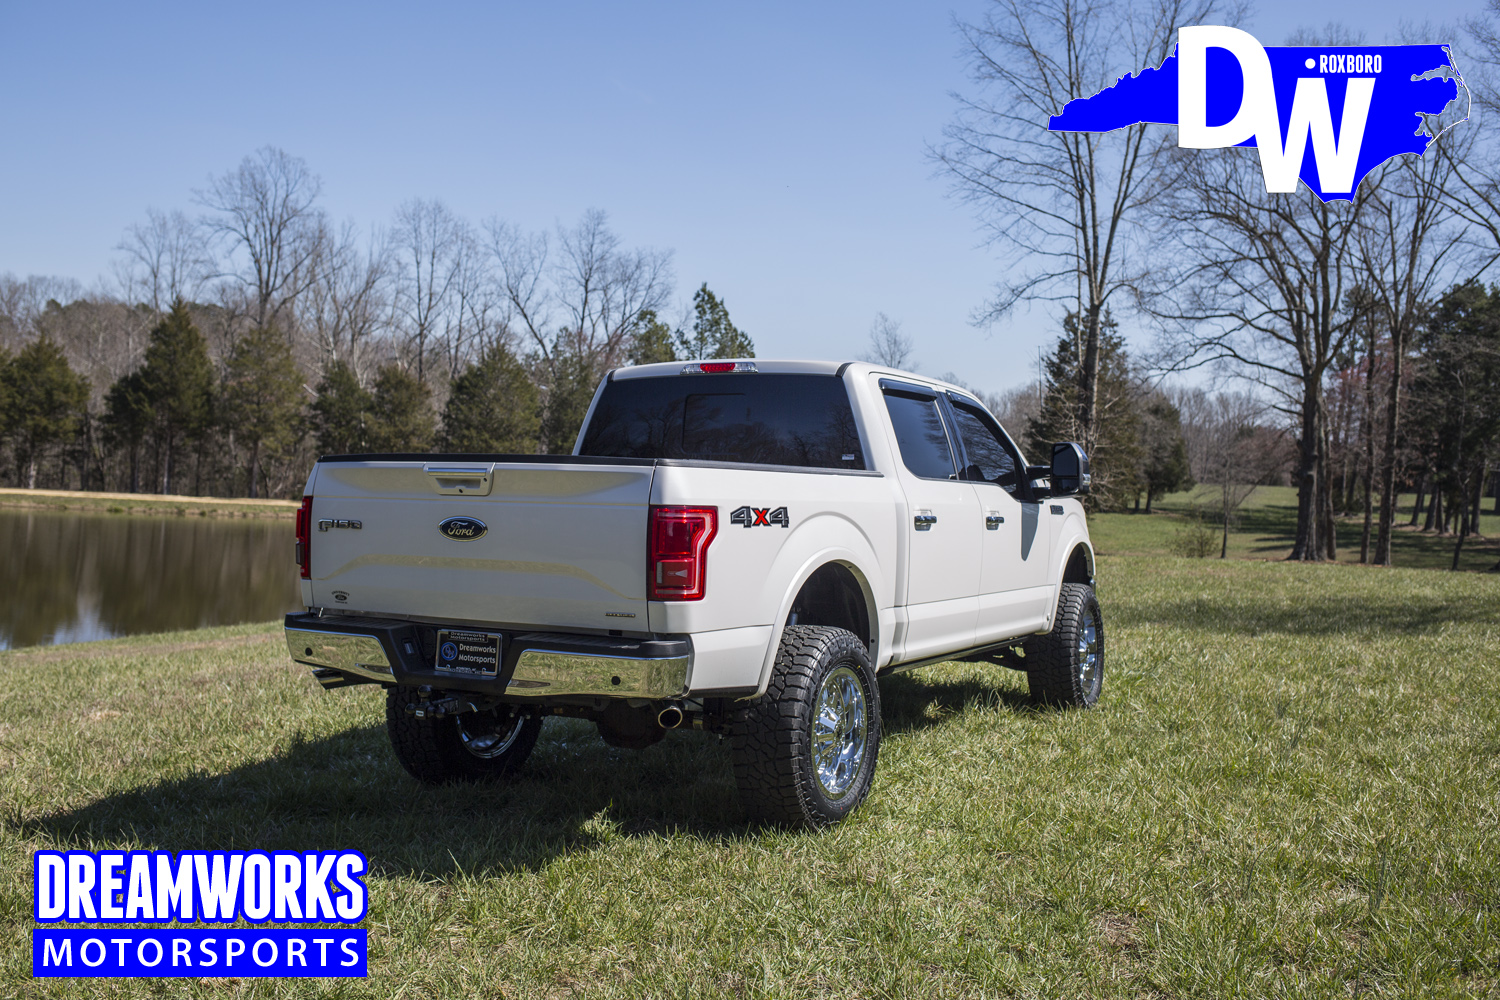 Ford_F150_By_Deamworks_Motorsports-12.jpg